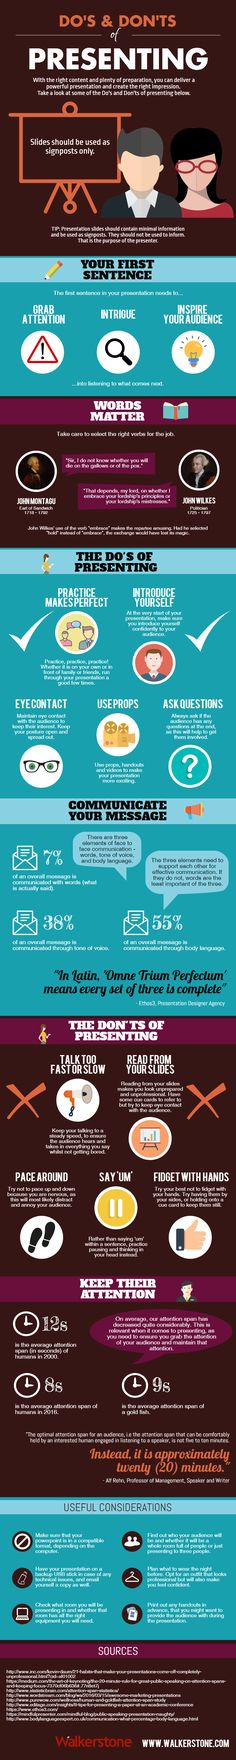 Presenting infographic